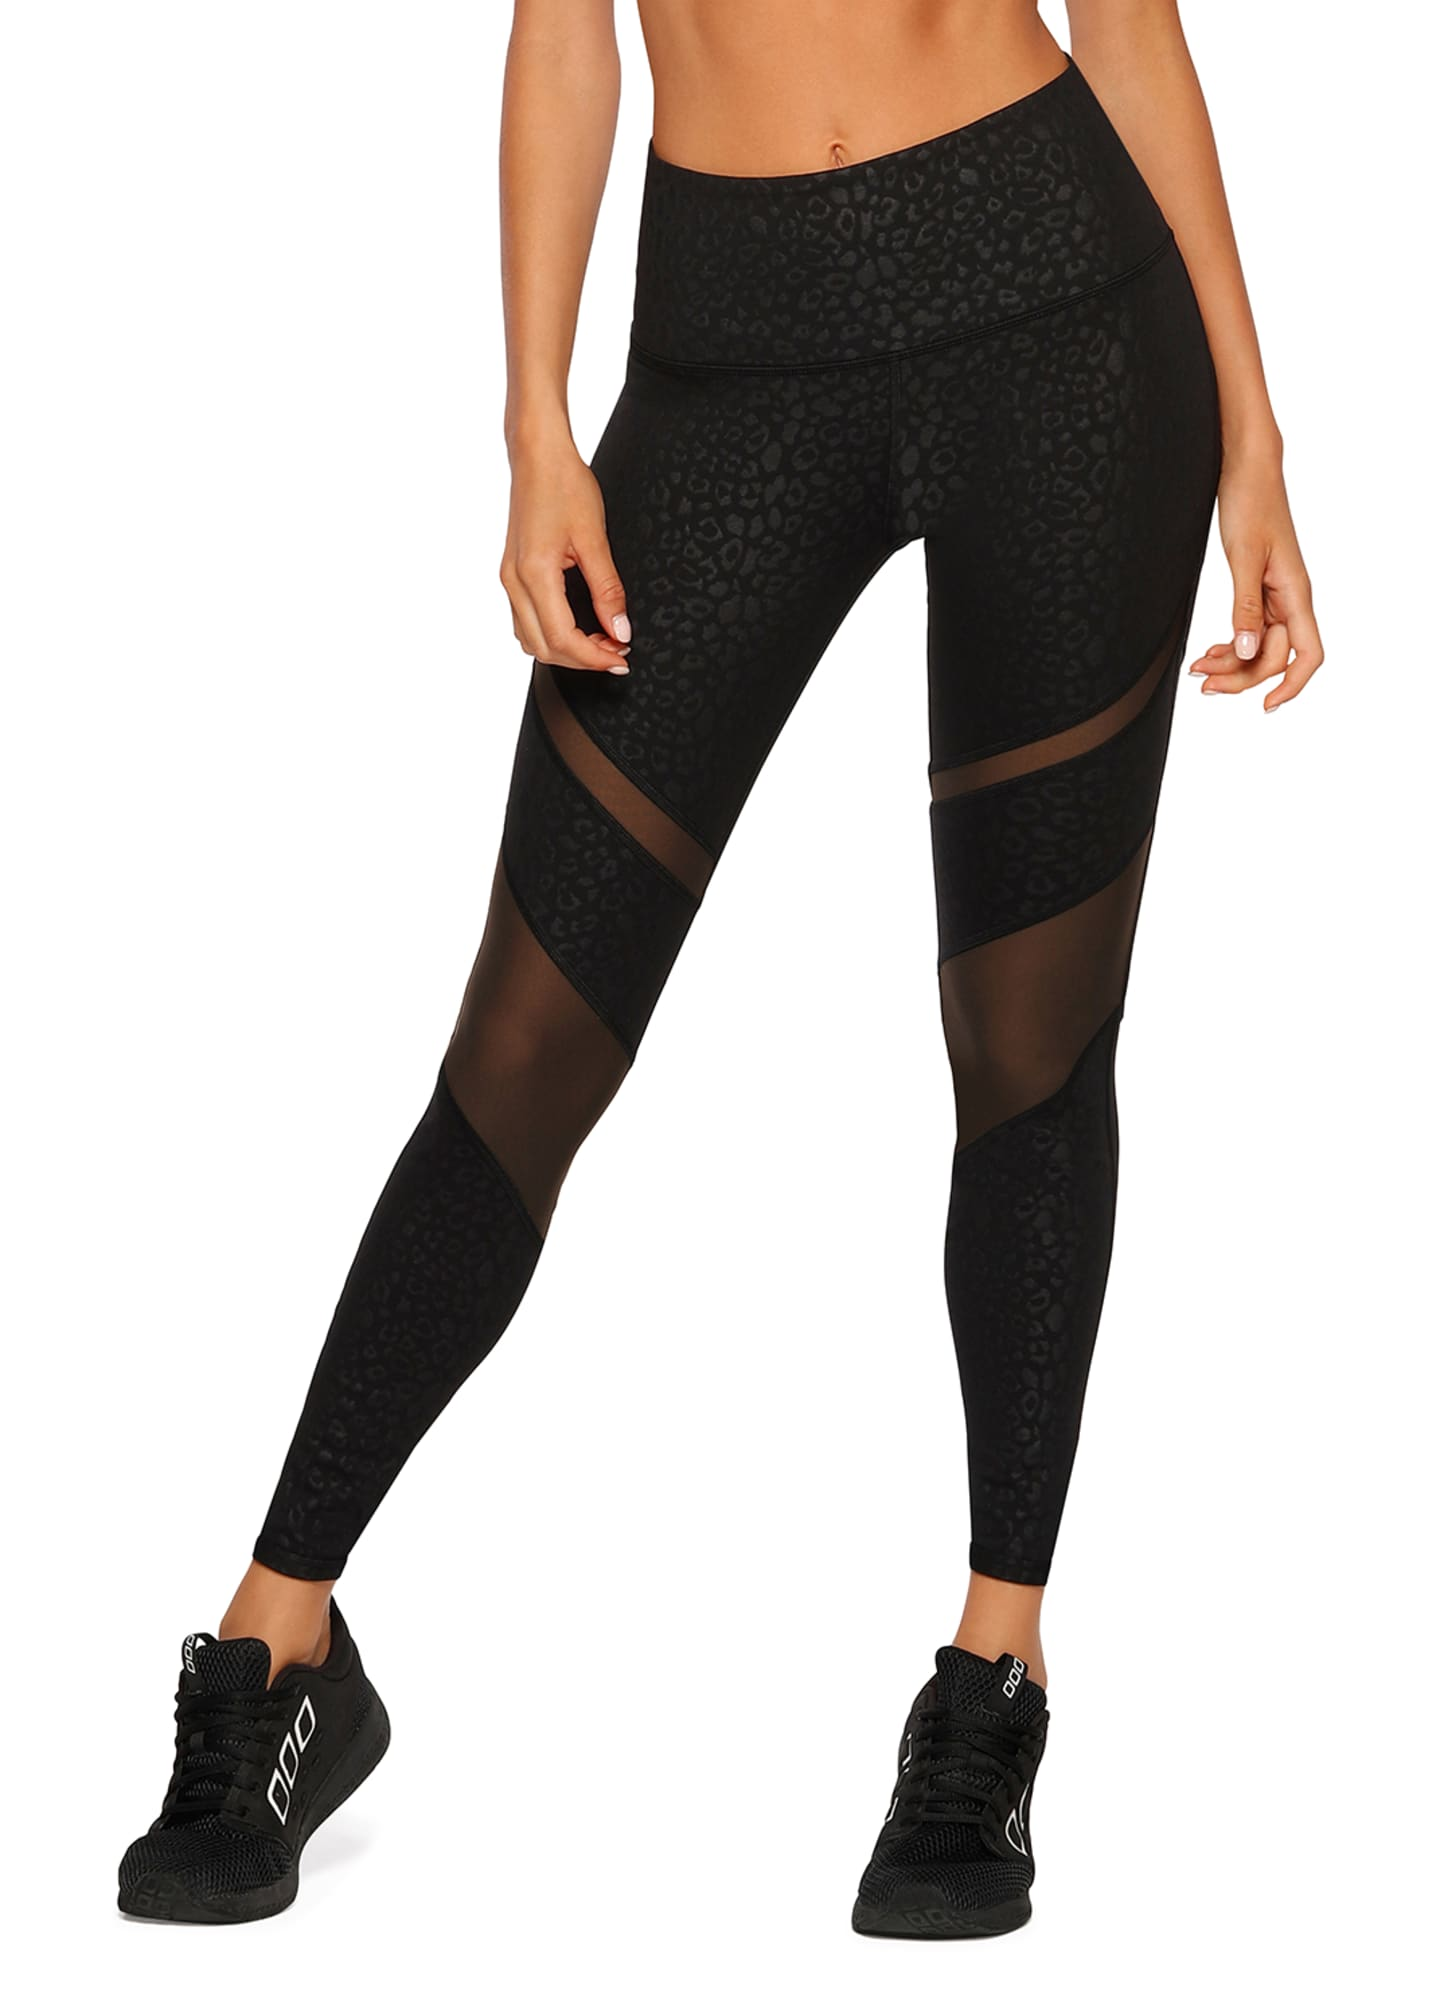 Lorna Jane Panther Core Full-Length Tights